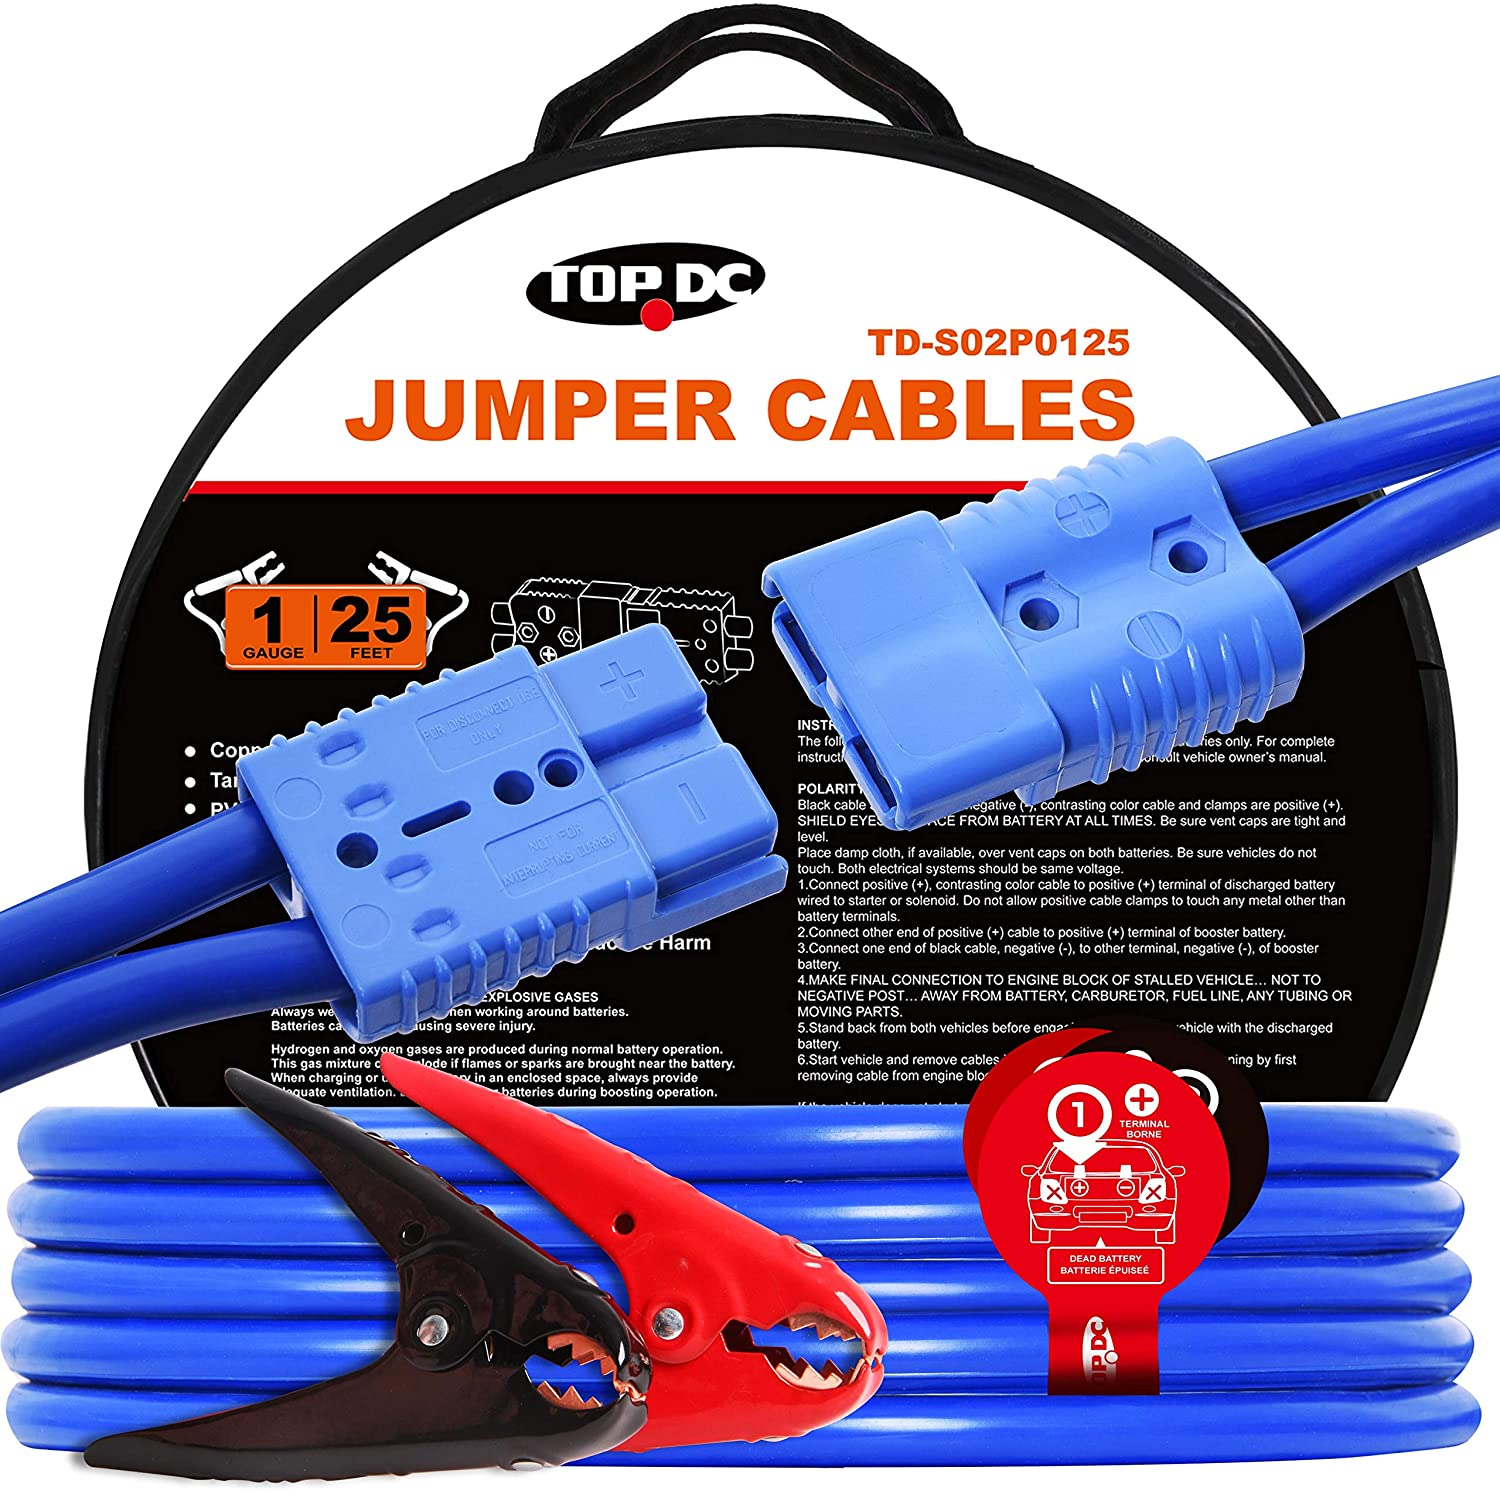 TOPDC Jumper Cables with Quick Plug 1 Gauge 25 Feet 700Amp Heavy Duty Booster Cables (1AWG x 25Ft)